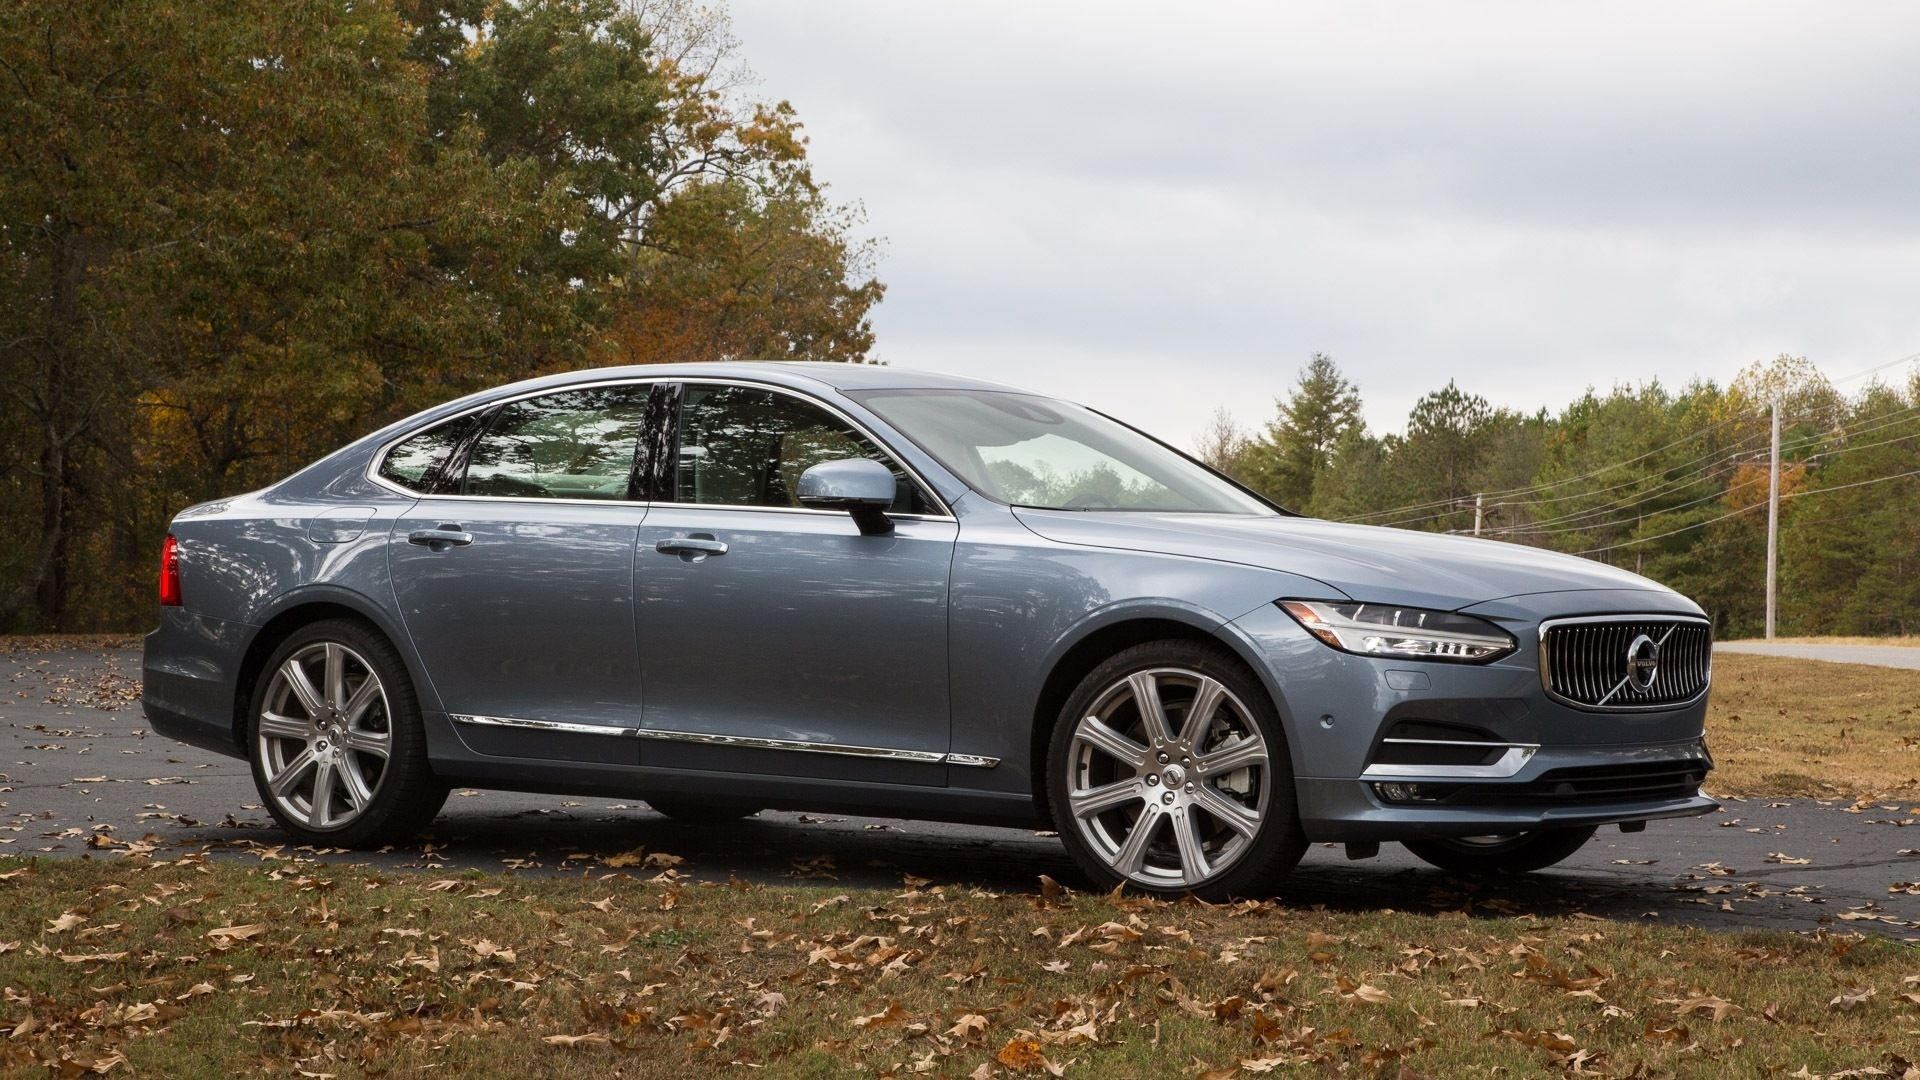 2021 Volvo S90 T6 Inscription Release Date Spy Photo Changes Exterior And Interior Review Volvo S90 Volvo New Cars